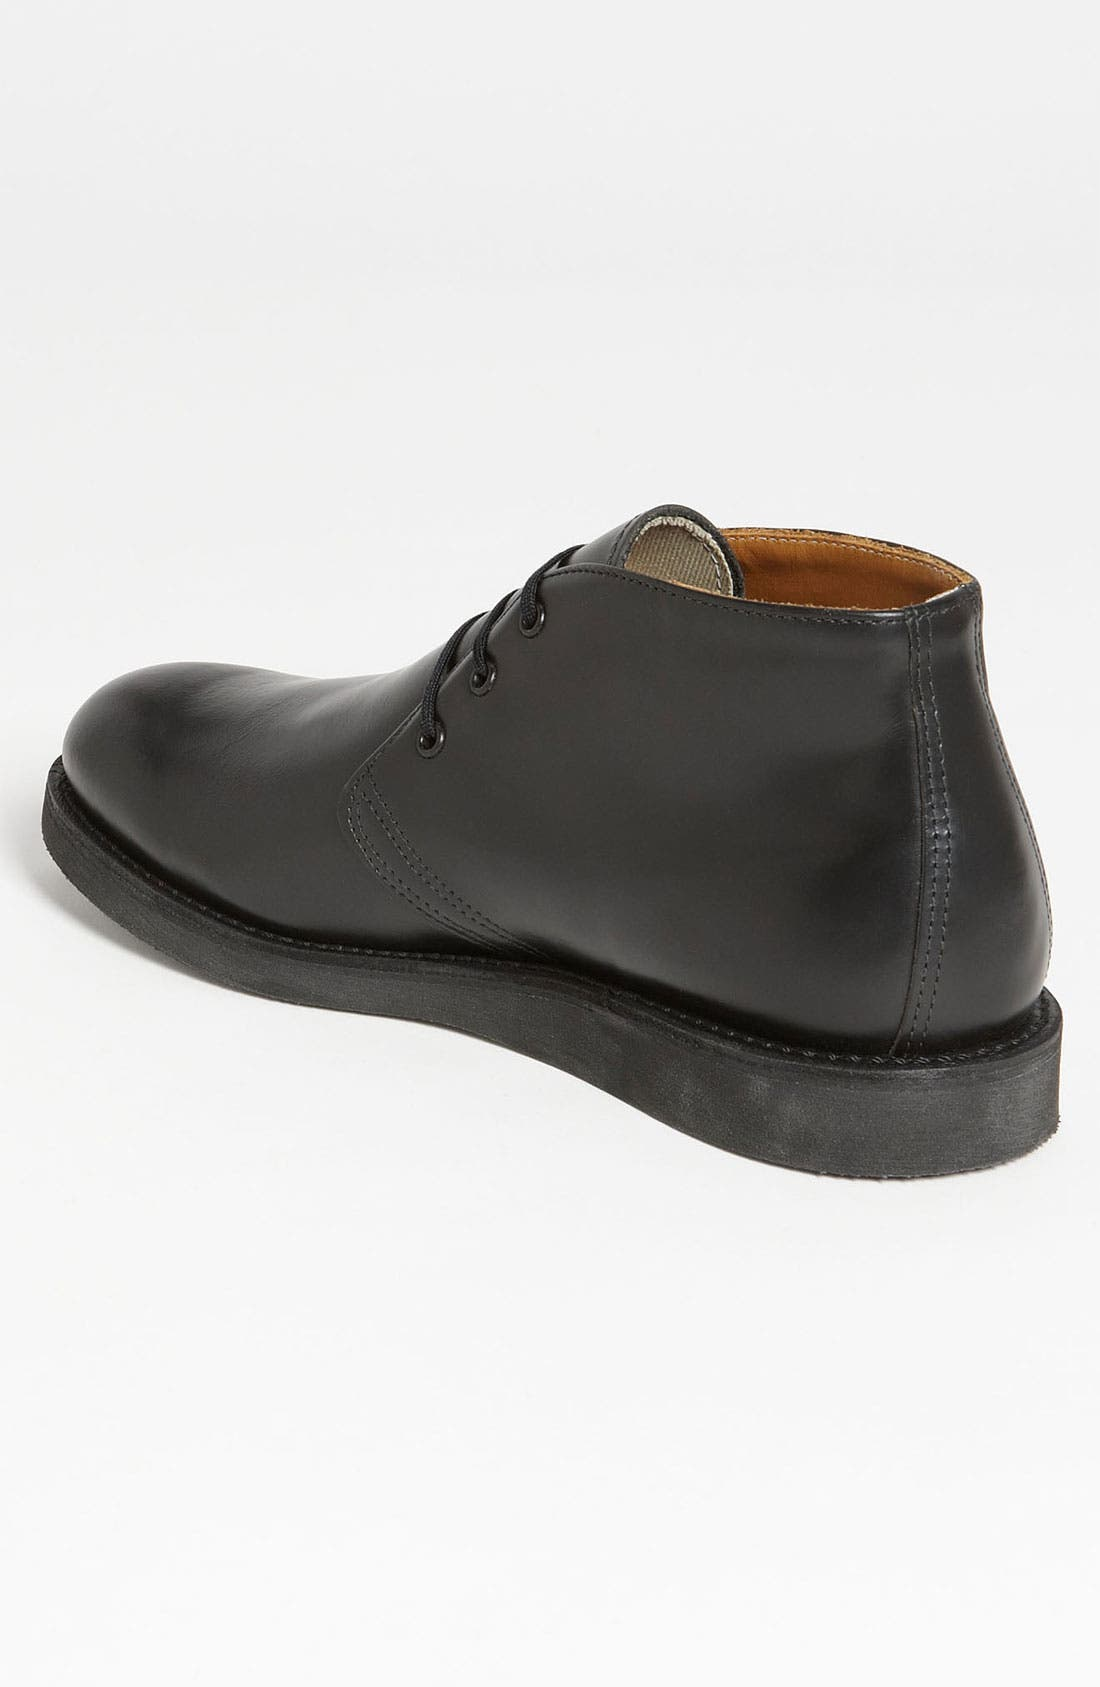 'Postman' Chukka Boot,                             Alternate thumbnail 2, color,                             BLACK CHAPARRAL- 9196